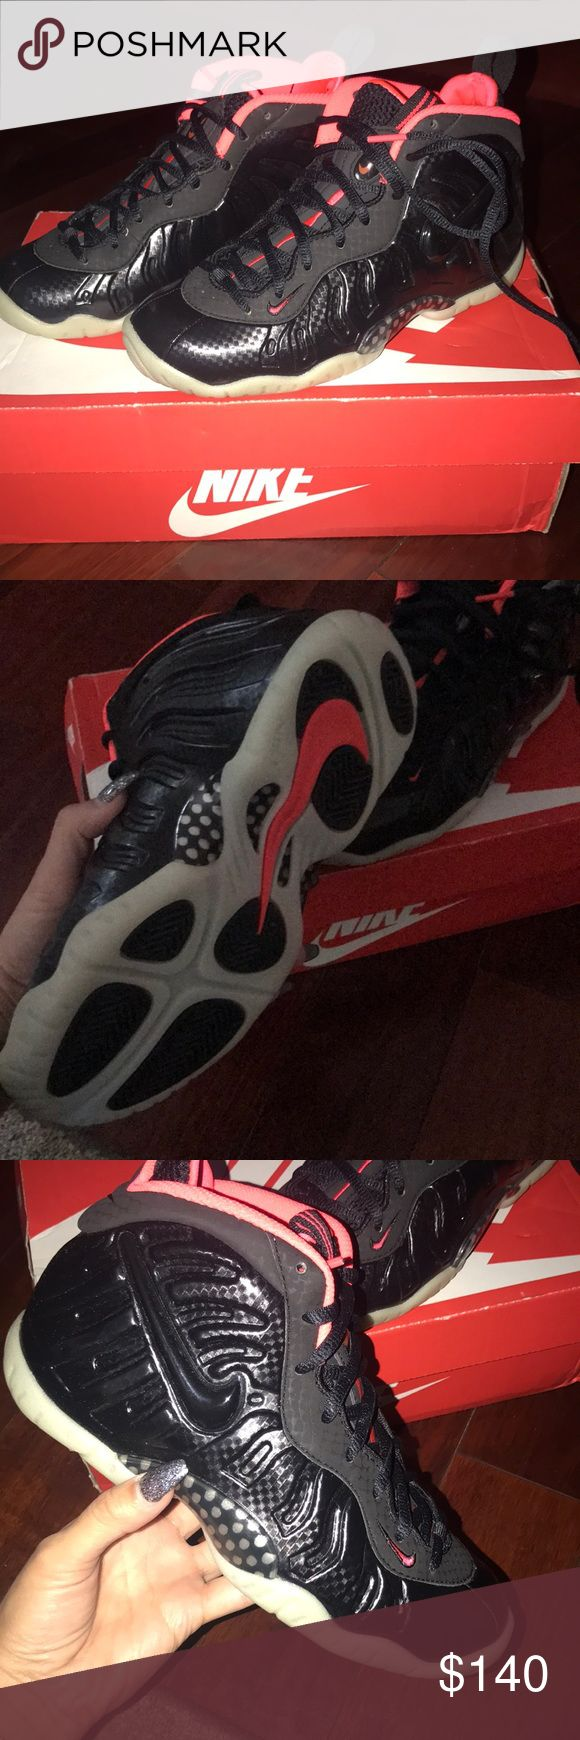 New glow in the dark Nike Yeezy Foamposite - SZ 4 Worn once!! The bottom sole glows in the dark! Size 4 with original box Nike Shoes Sneakers